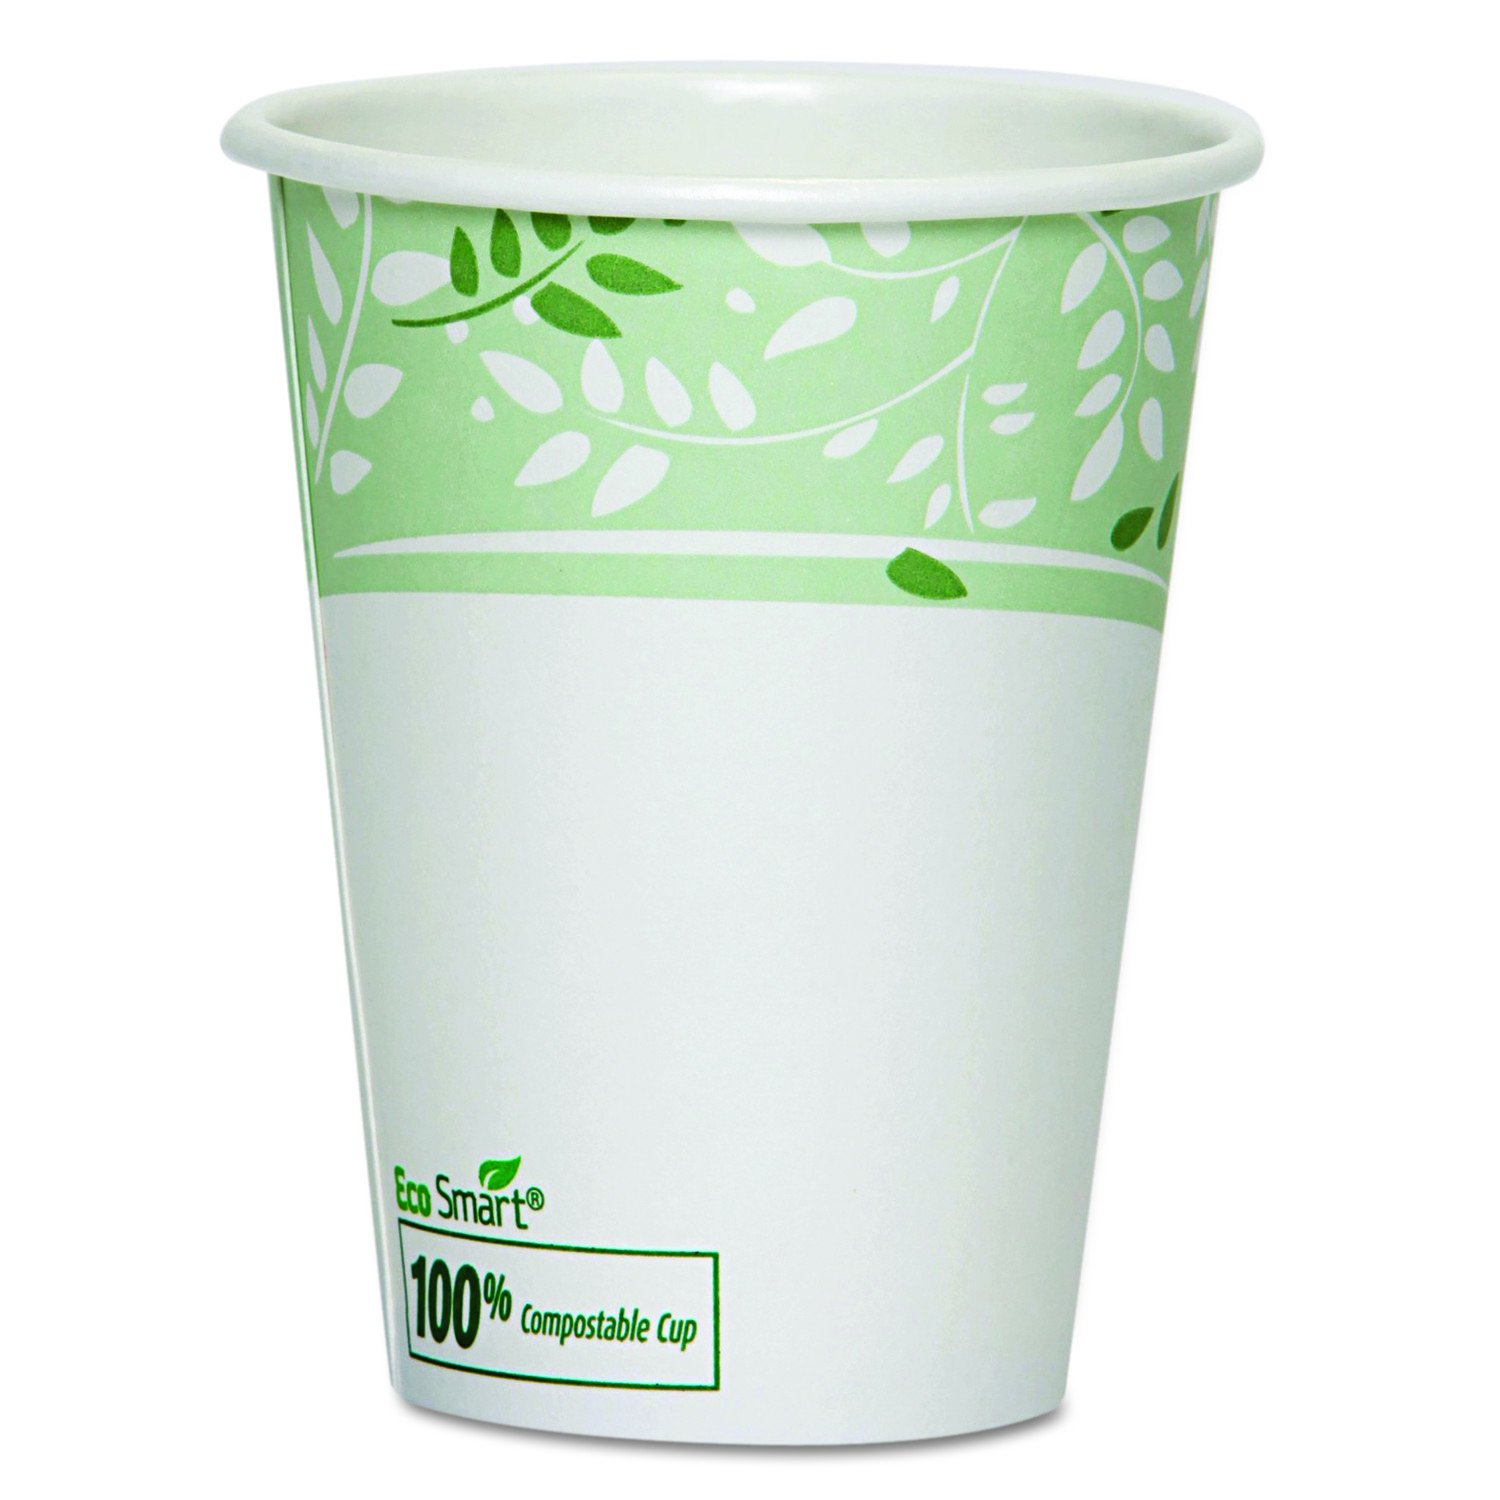 Image of Dixie 12 oz. EcoSmart Paper Hot Coffee Cups w/ PLA Lining by GP PRO (Georgia-Pacific), Viridian, 2342PLA, 1,000 Count (50 Cups Per Sleeve, 20 Sleeves Per Case) Health and Household